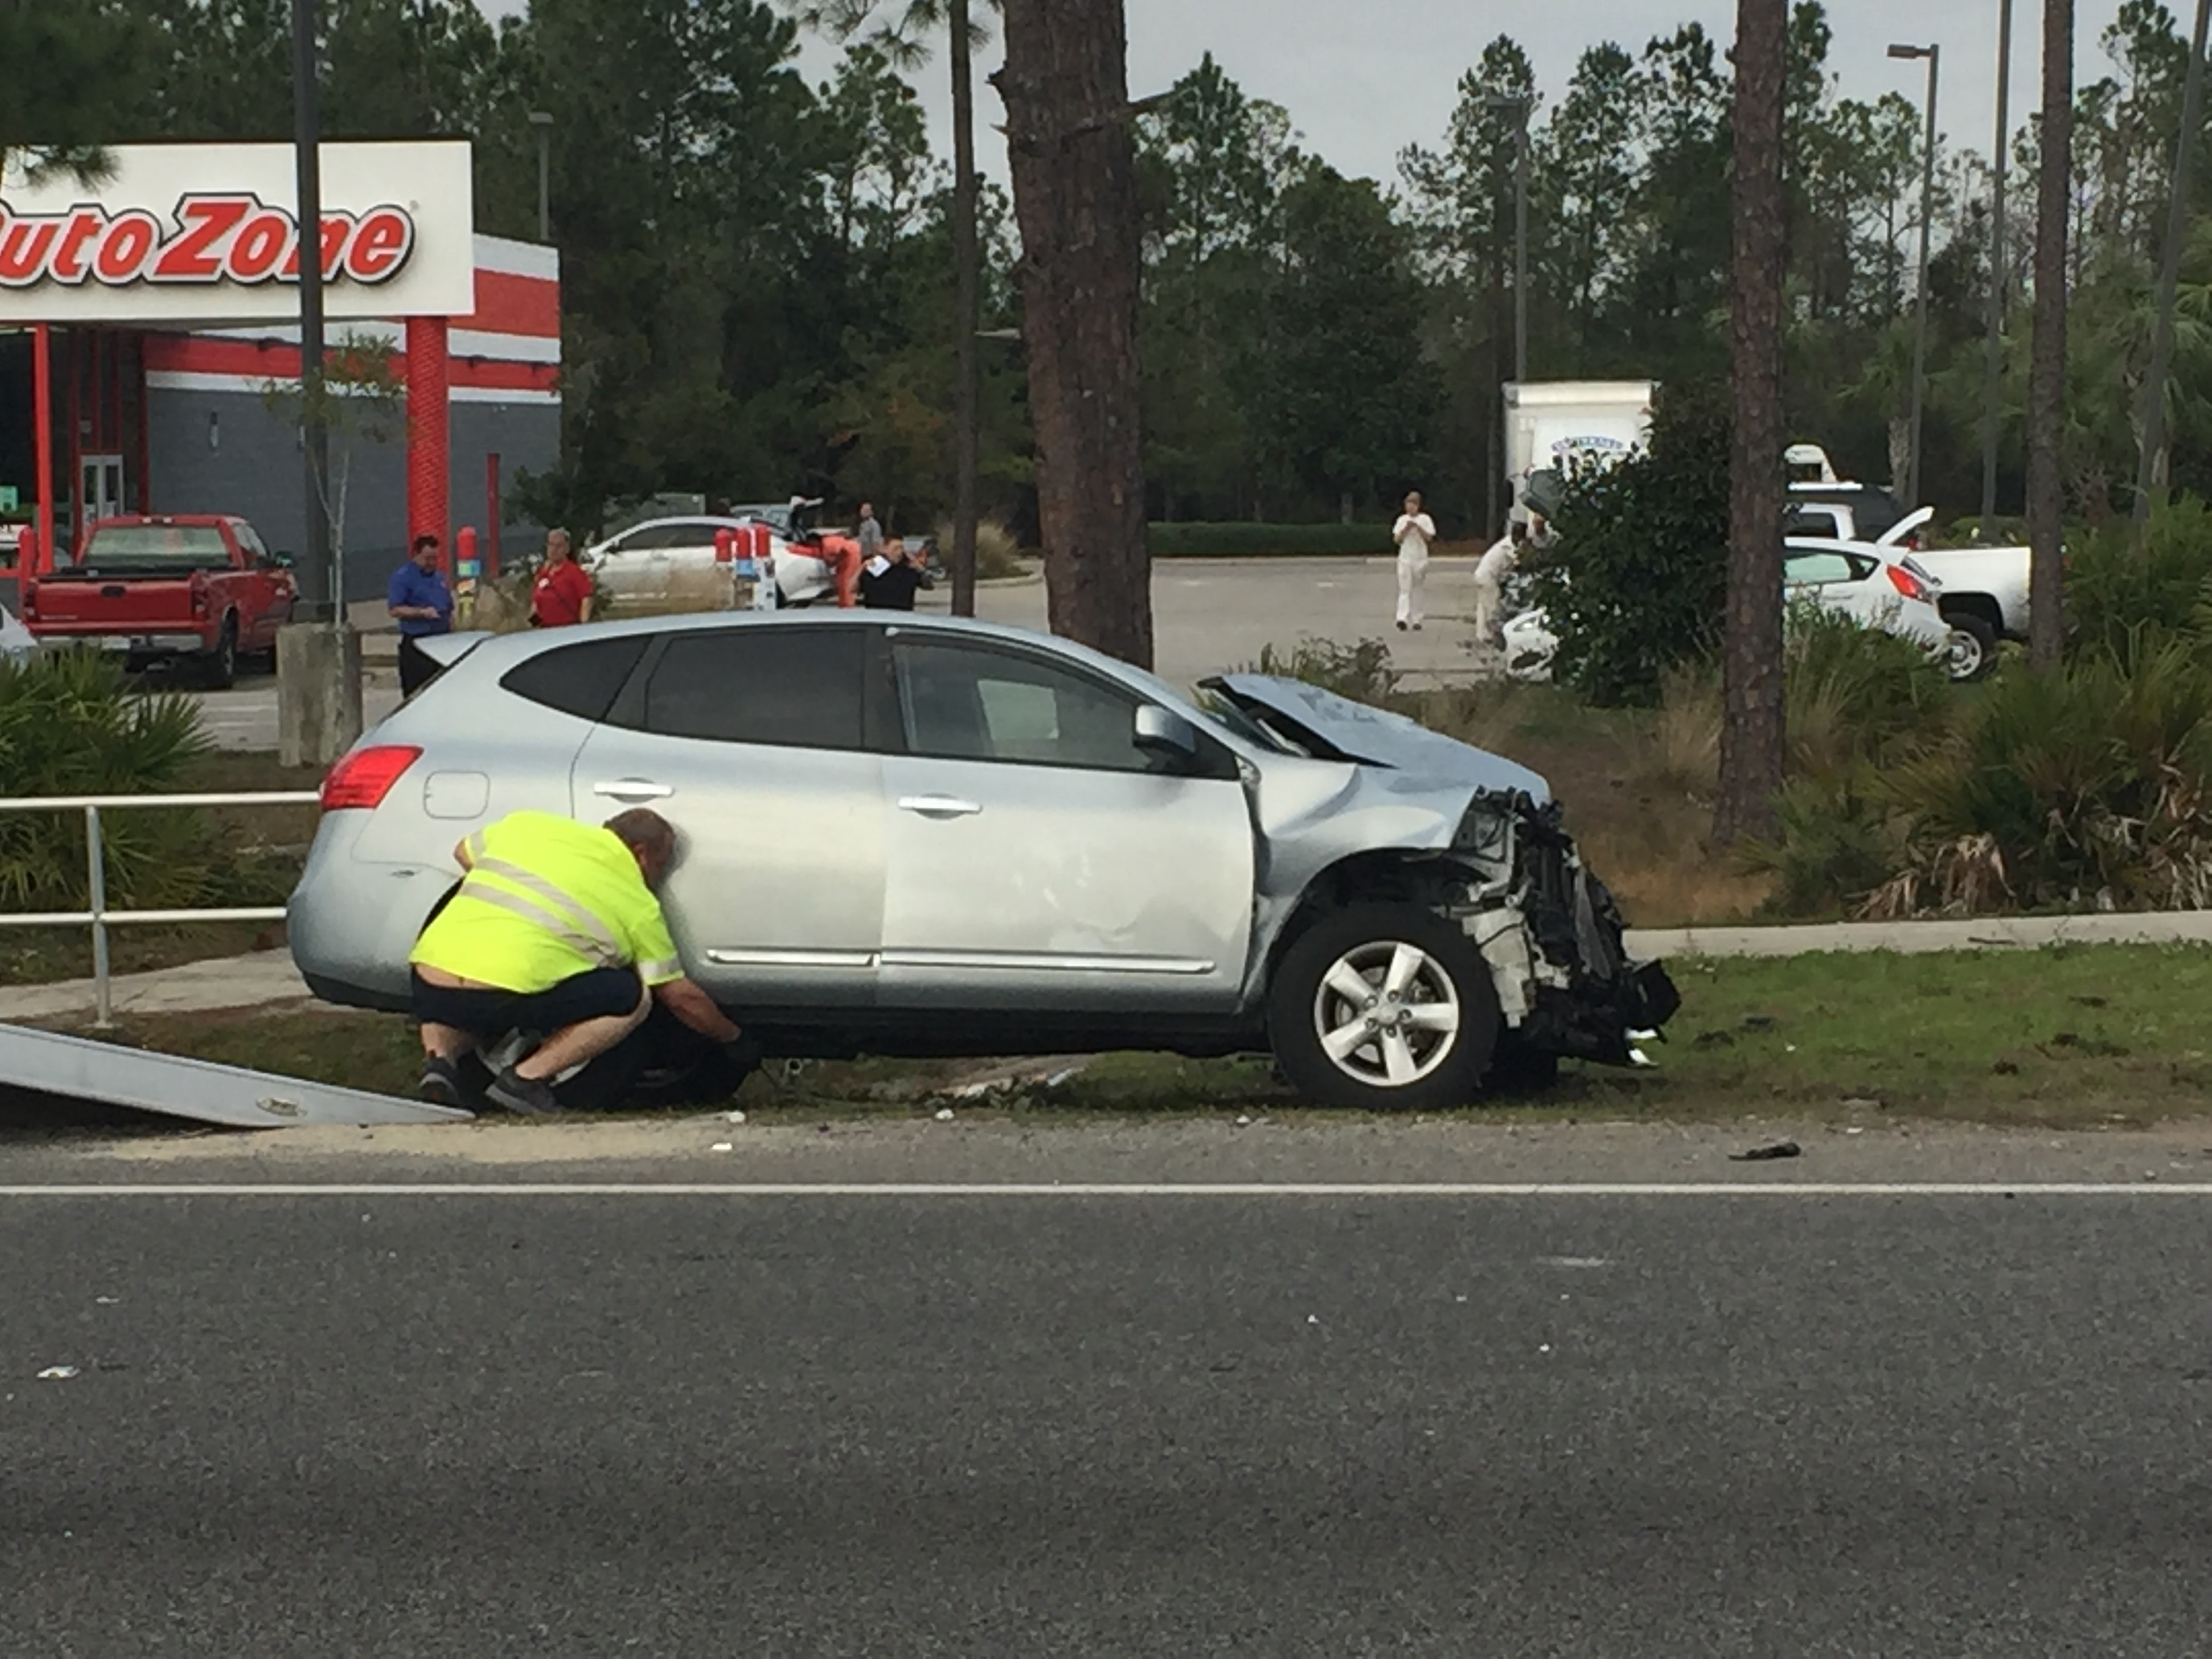 3 Injured in Panama City Beach Rollover Accident